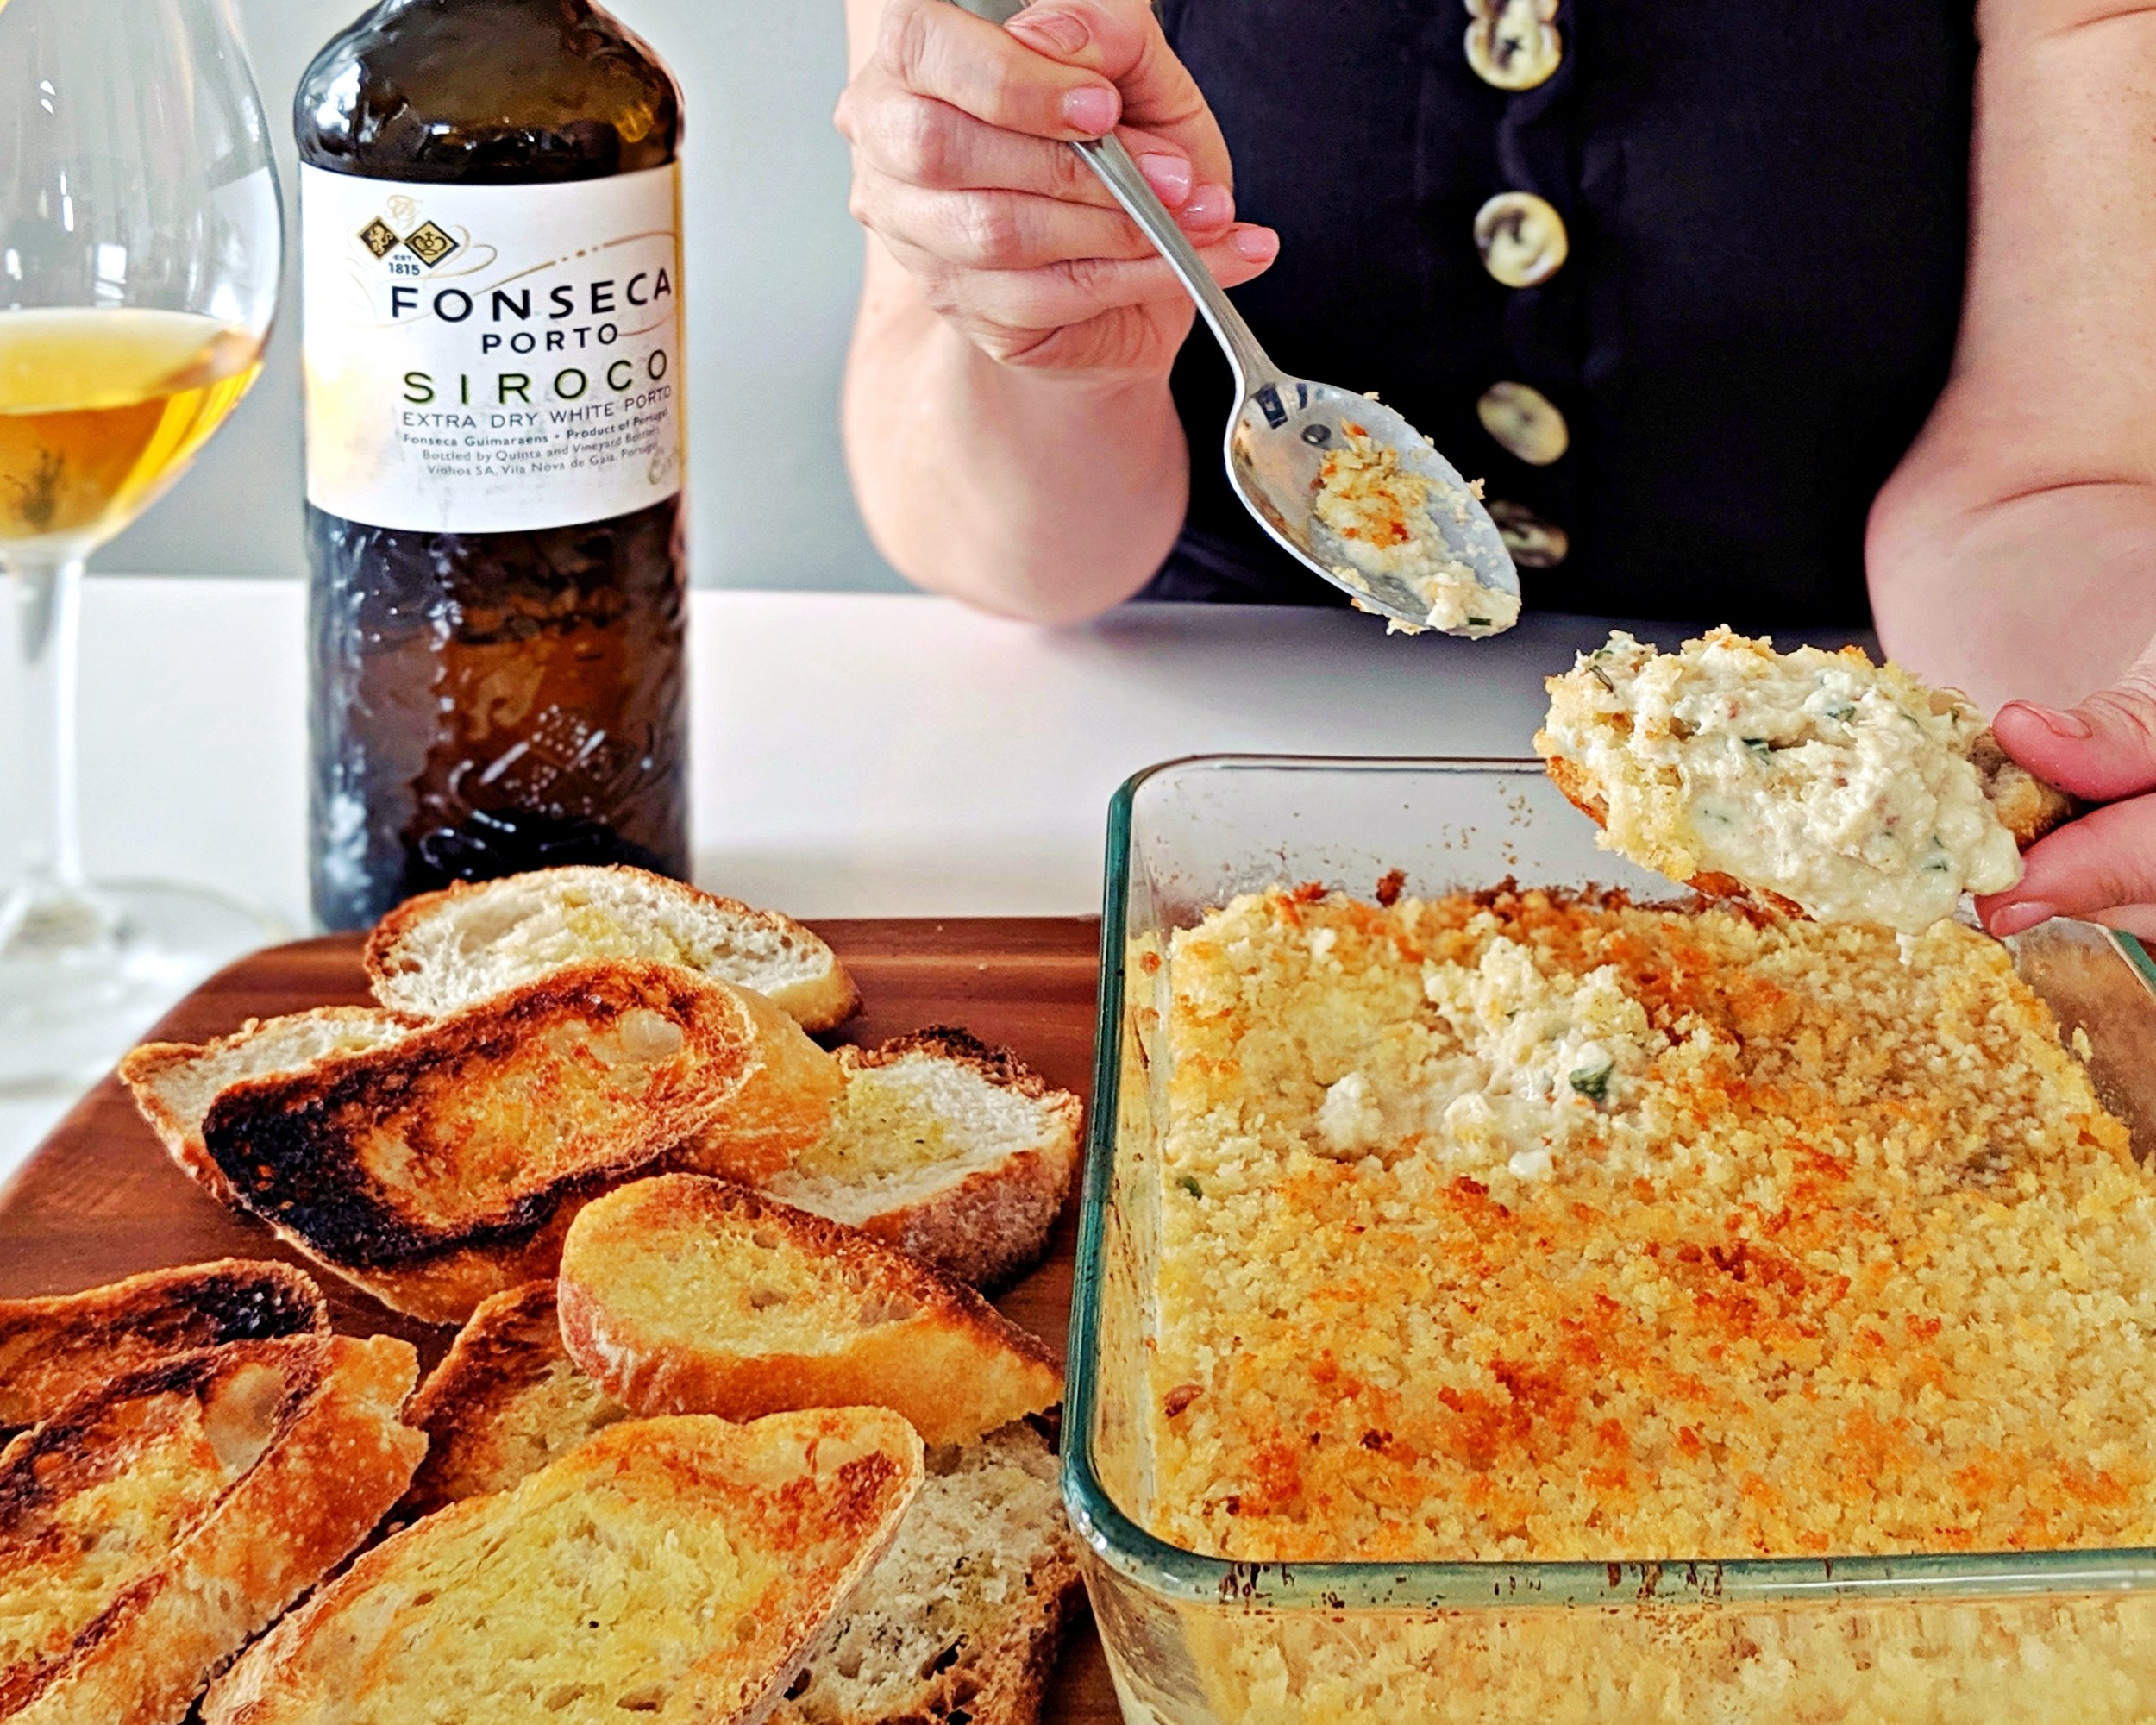 Warm Crab Dip is a perfect food pairing for white port.